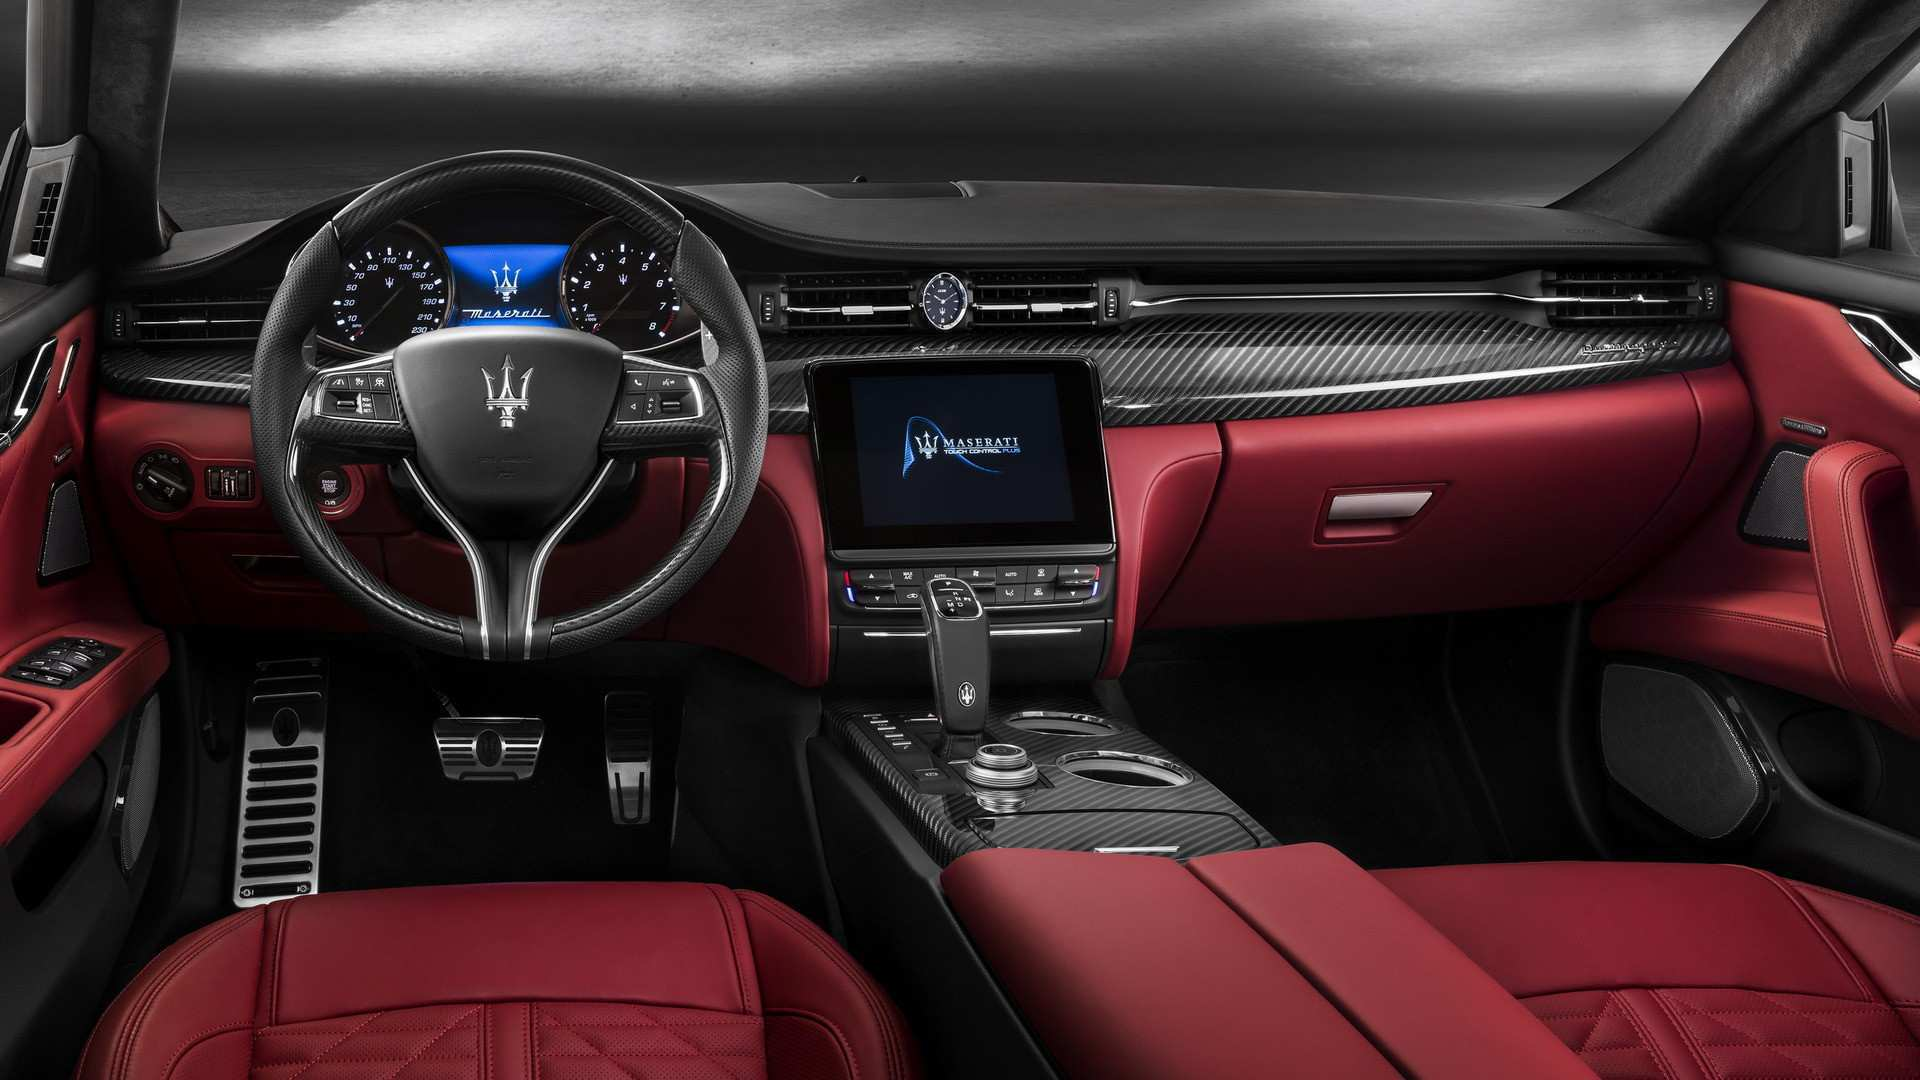 28 Best Maserati Granturismo 2019 Price And Release Date